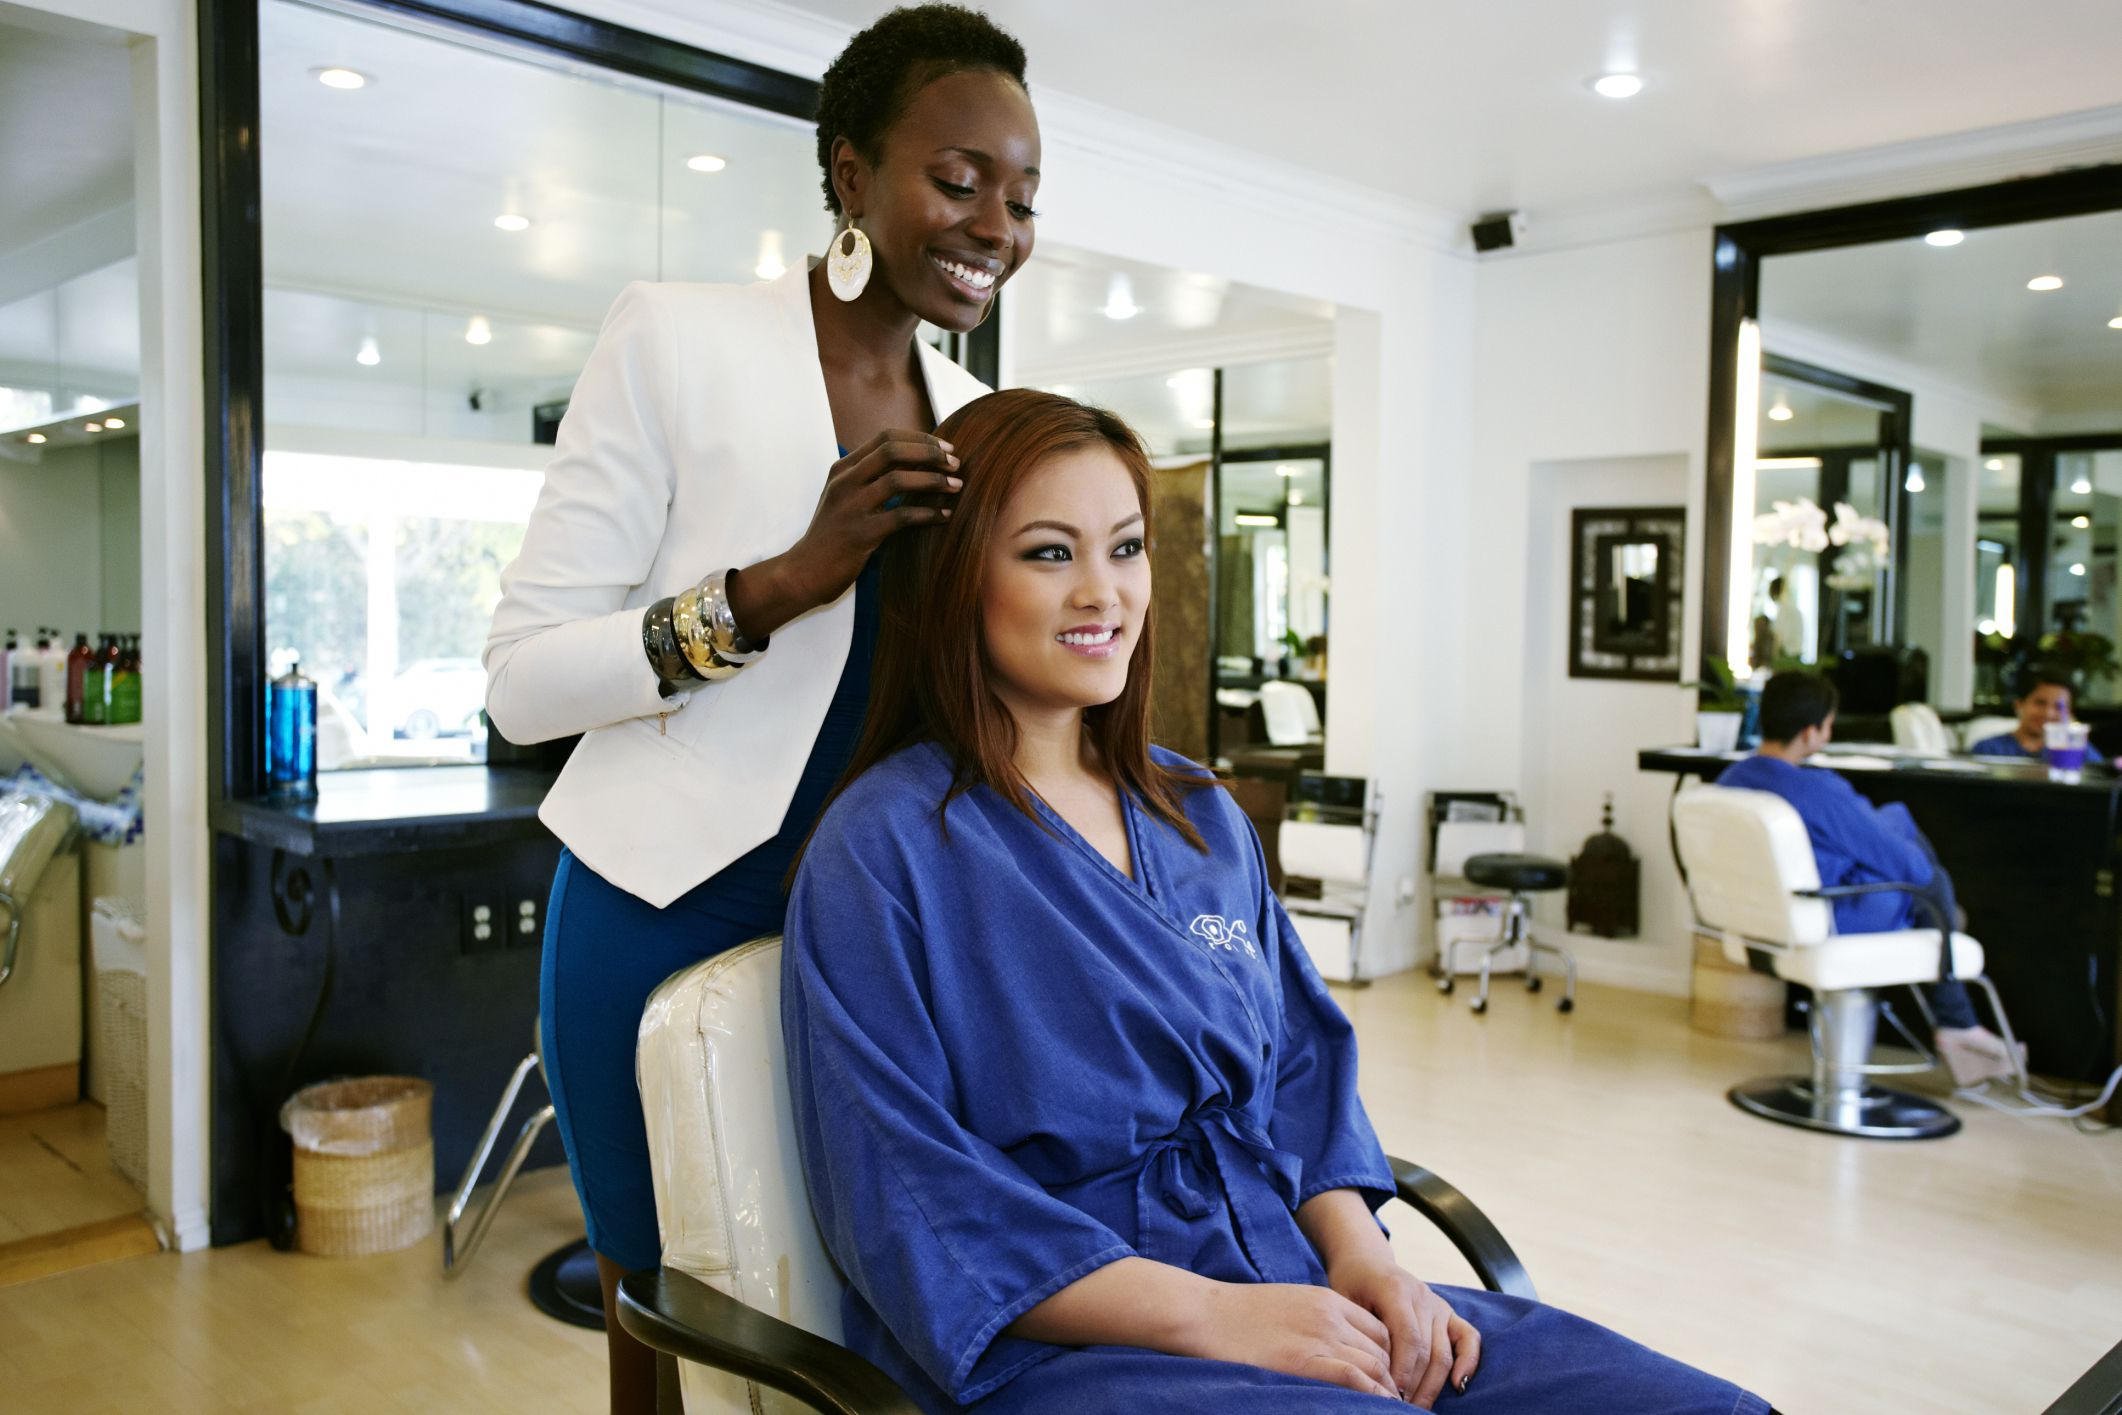 How Much To Tip Hairdresser At Christmas.Should You Tip The Owner Of A Salon